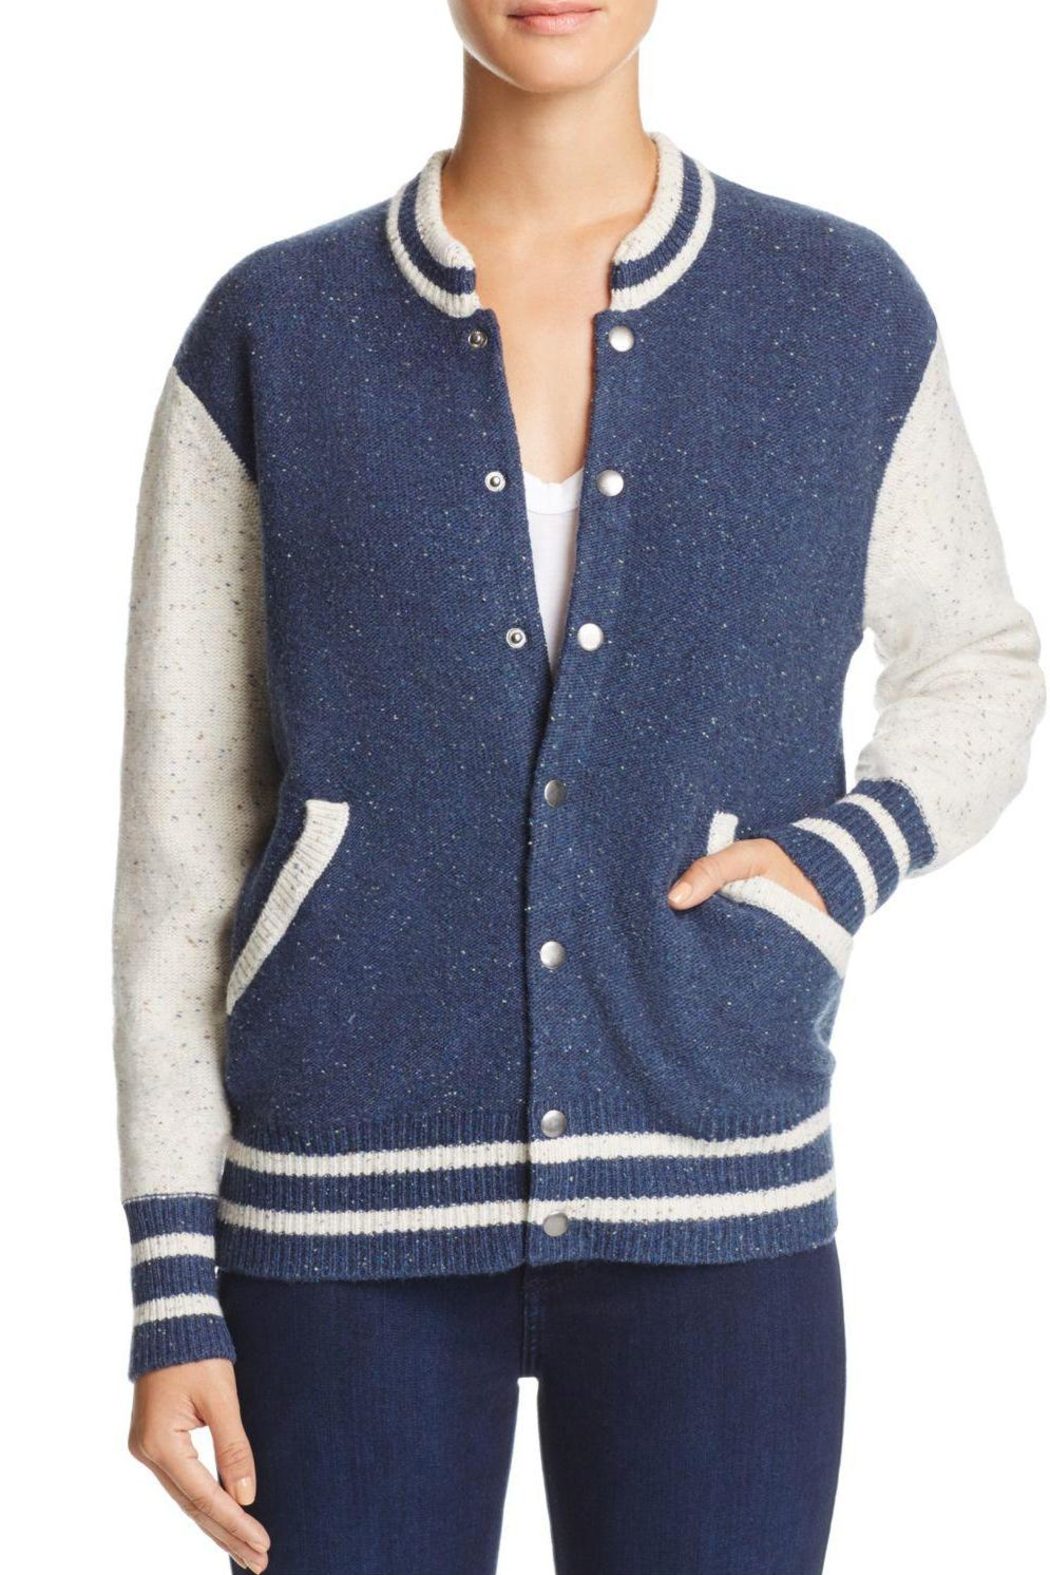 Joie Blakesly Varsity Sweater - Front Cropped Image